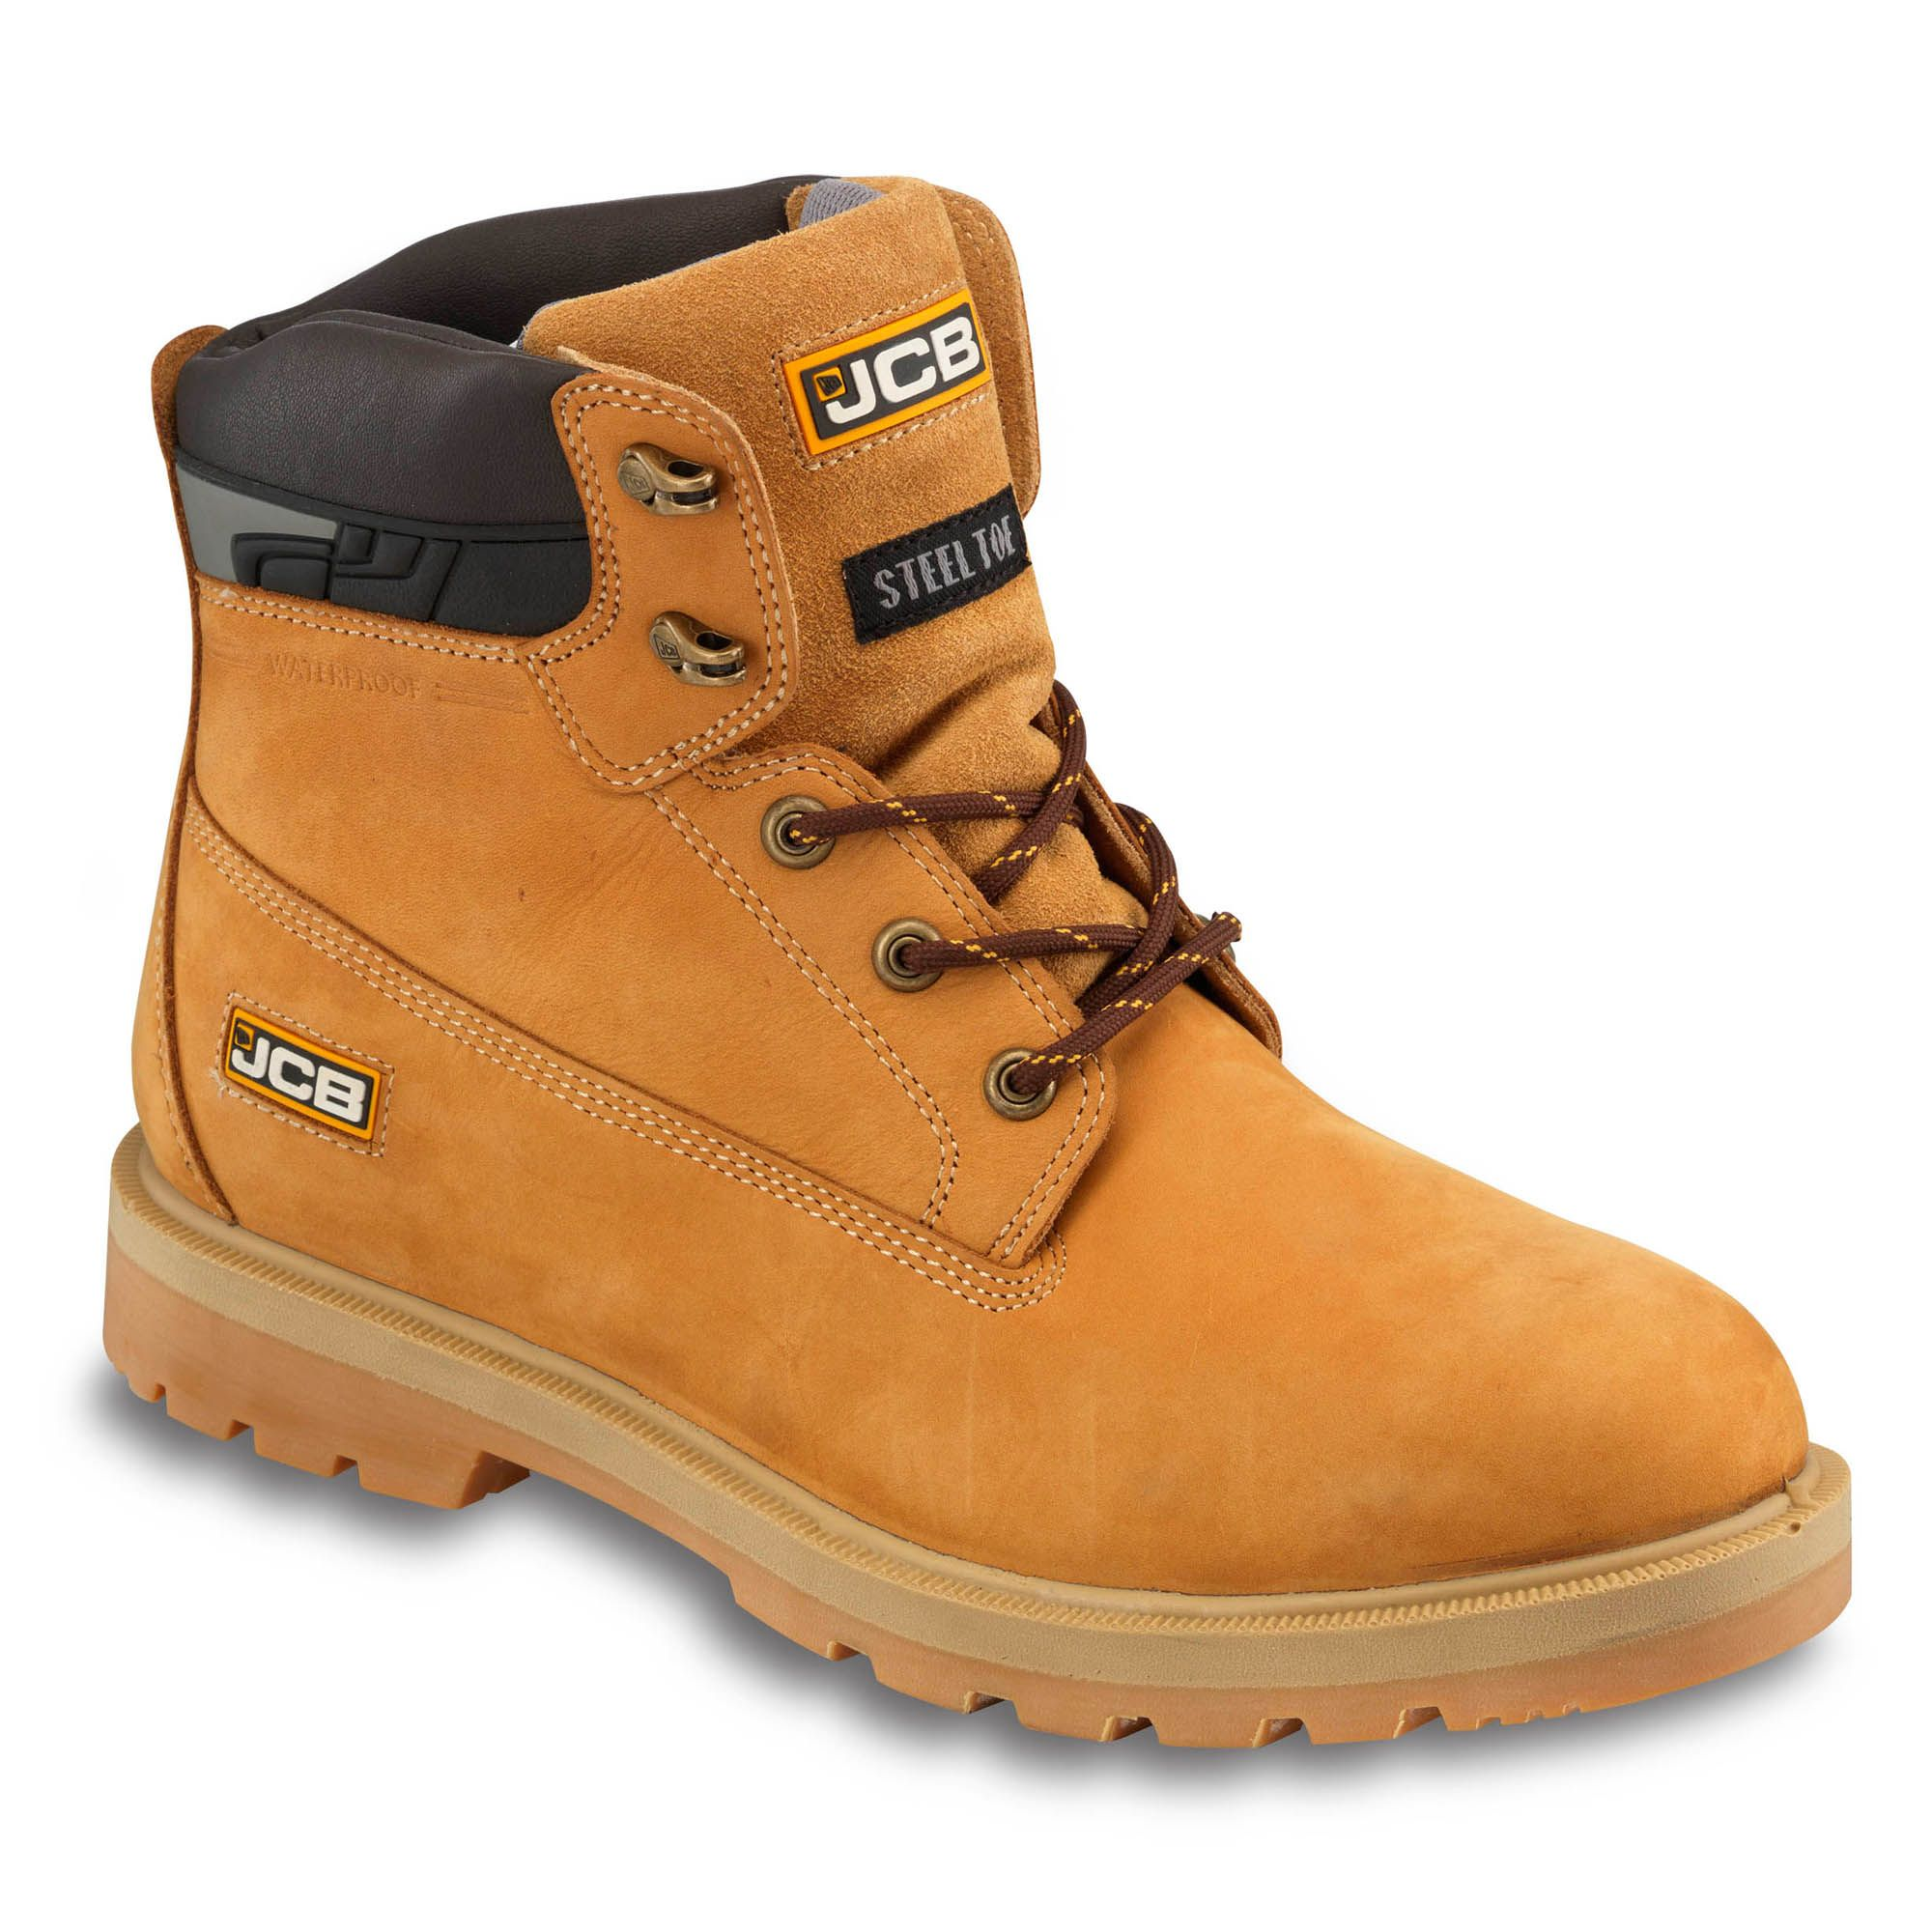 Jcb Honey Protector Safety Boots, Size 10